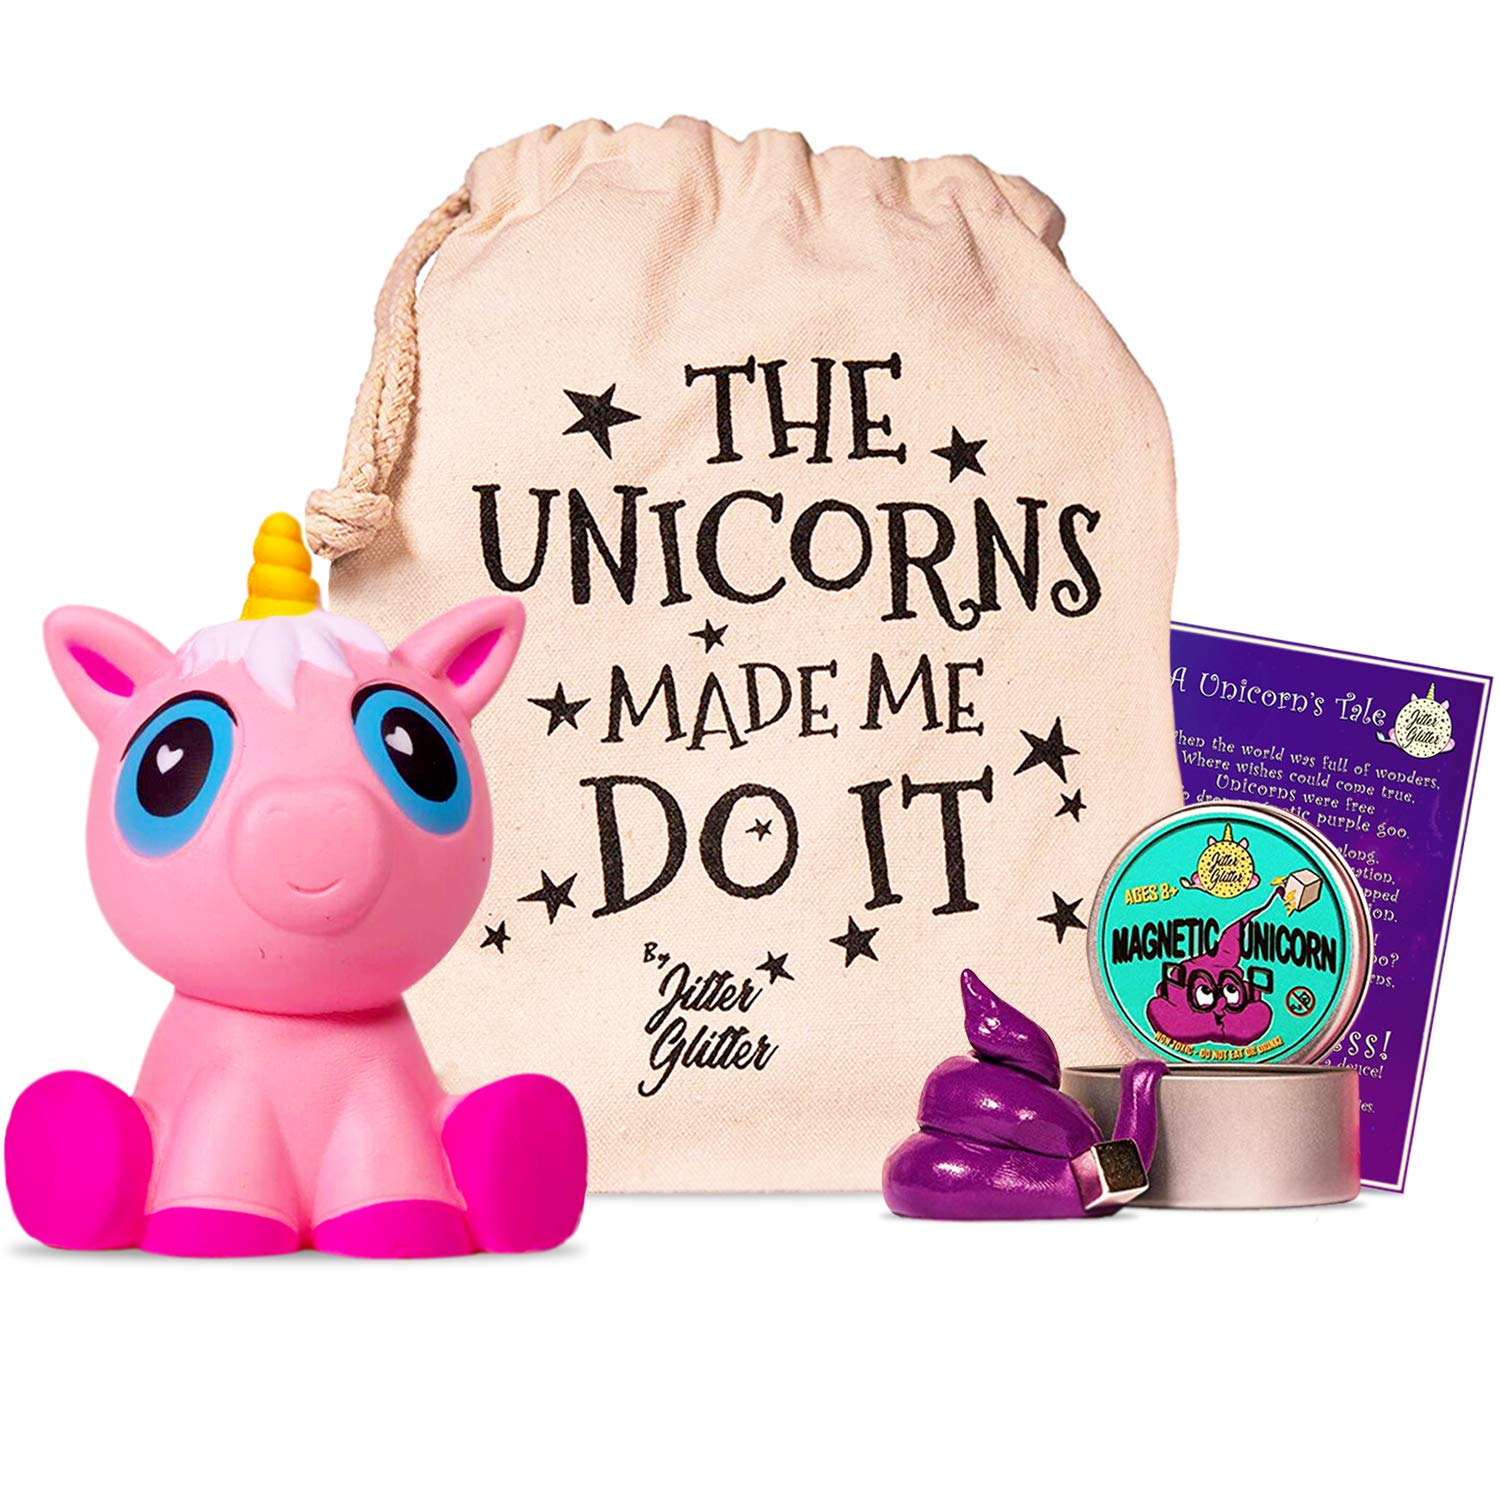 Jumbo Pink Unicorn Squishy and Magnetic Unicorn Putty with Magnet - Unicorn Stress Relief Kit - Funny Gift for Adults and Kids who Love Unicorns. Sensory Play Toy Set for Fun Silly Therapy, Ages 8+